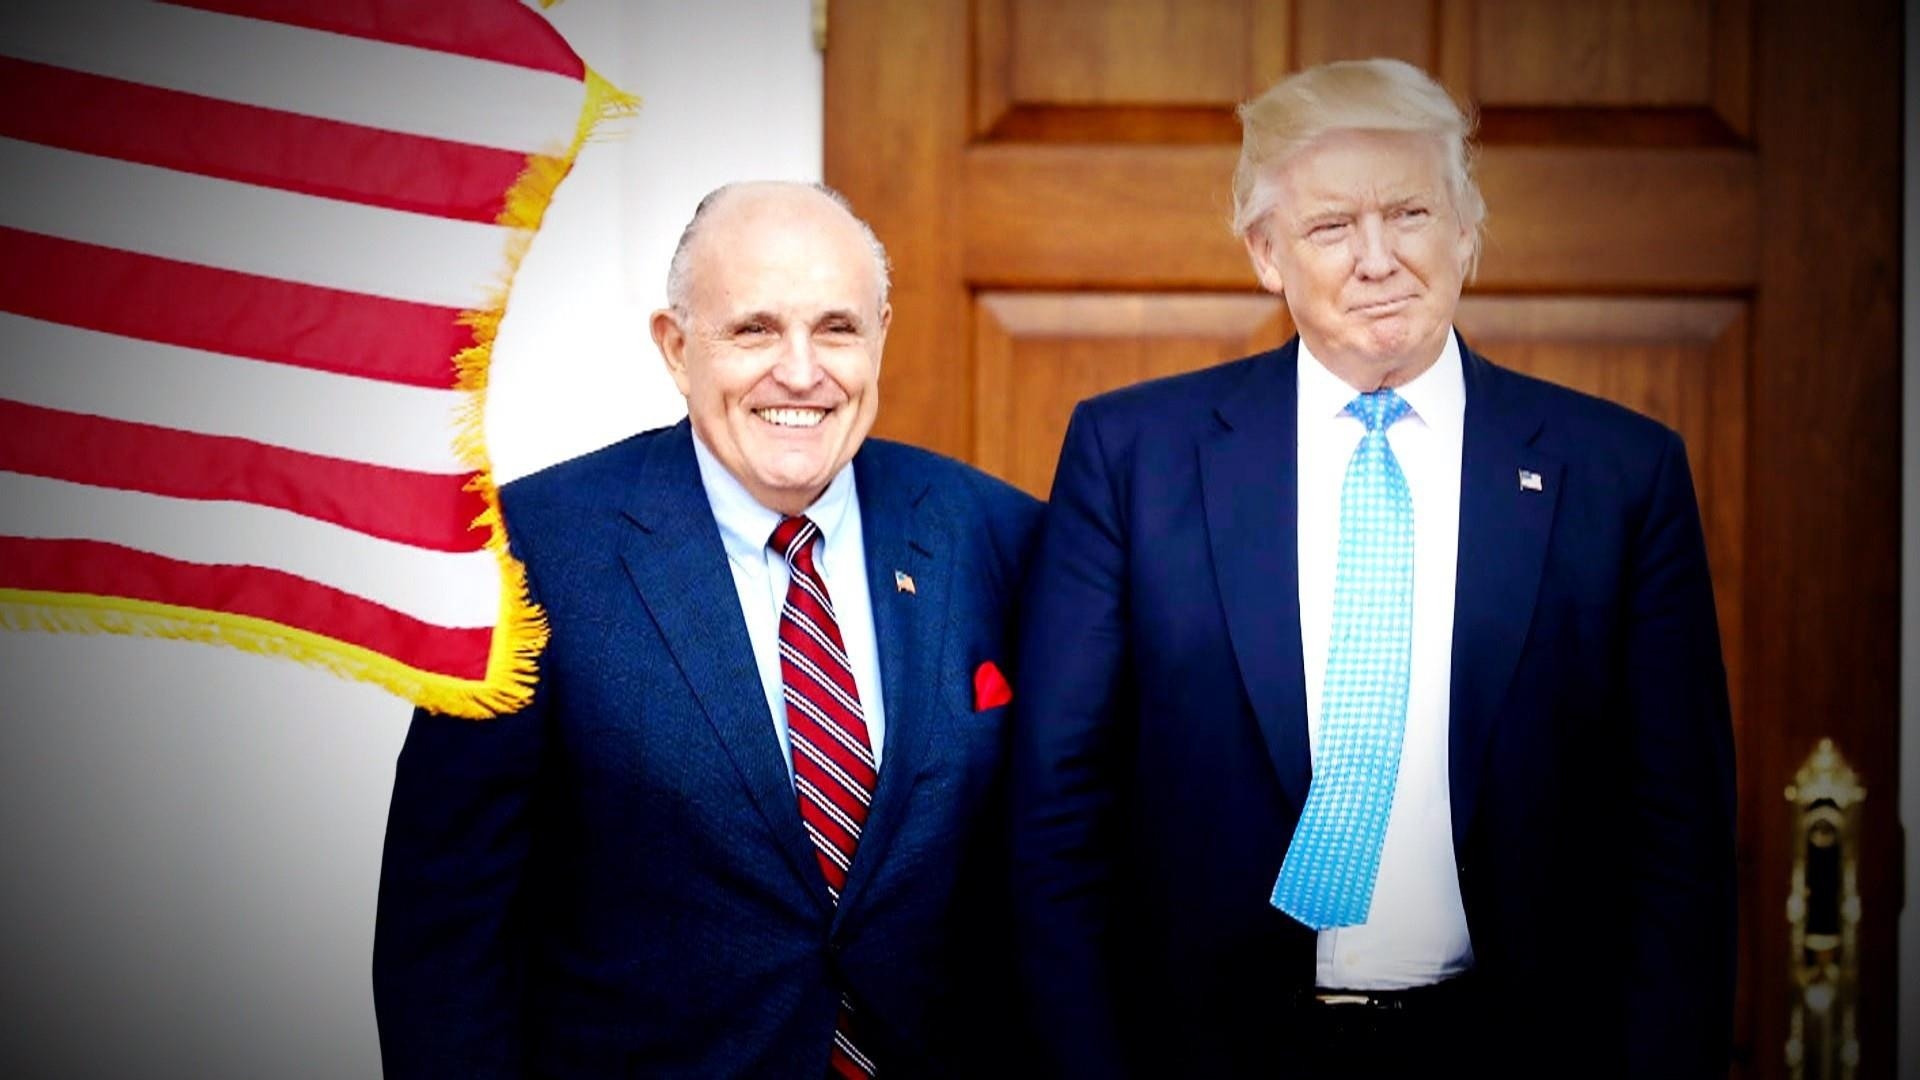 In sharp reversal, Giuliani now claims: 'I never said there was no collusion between the campaign' and Russia